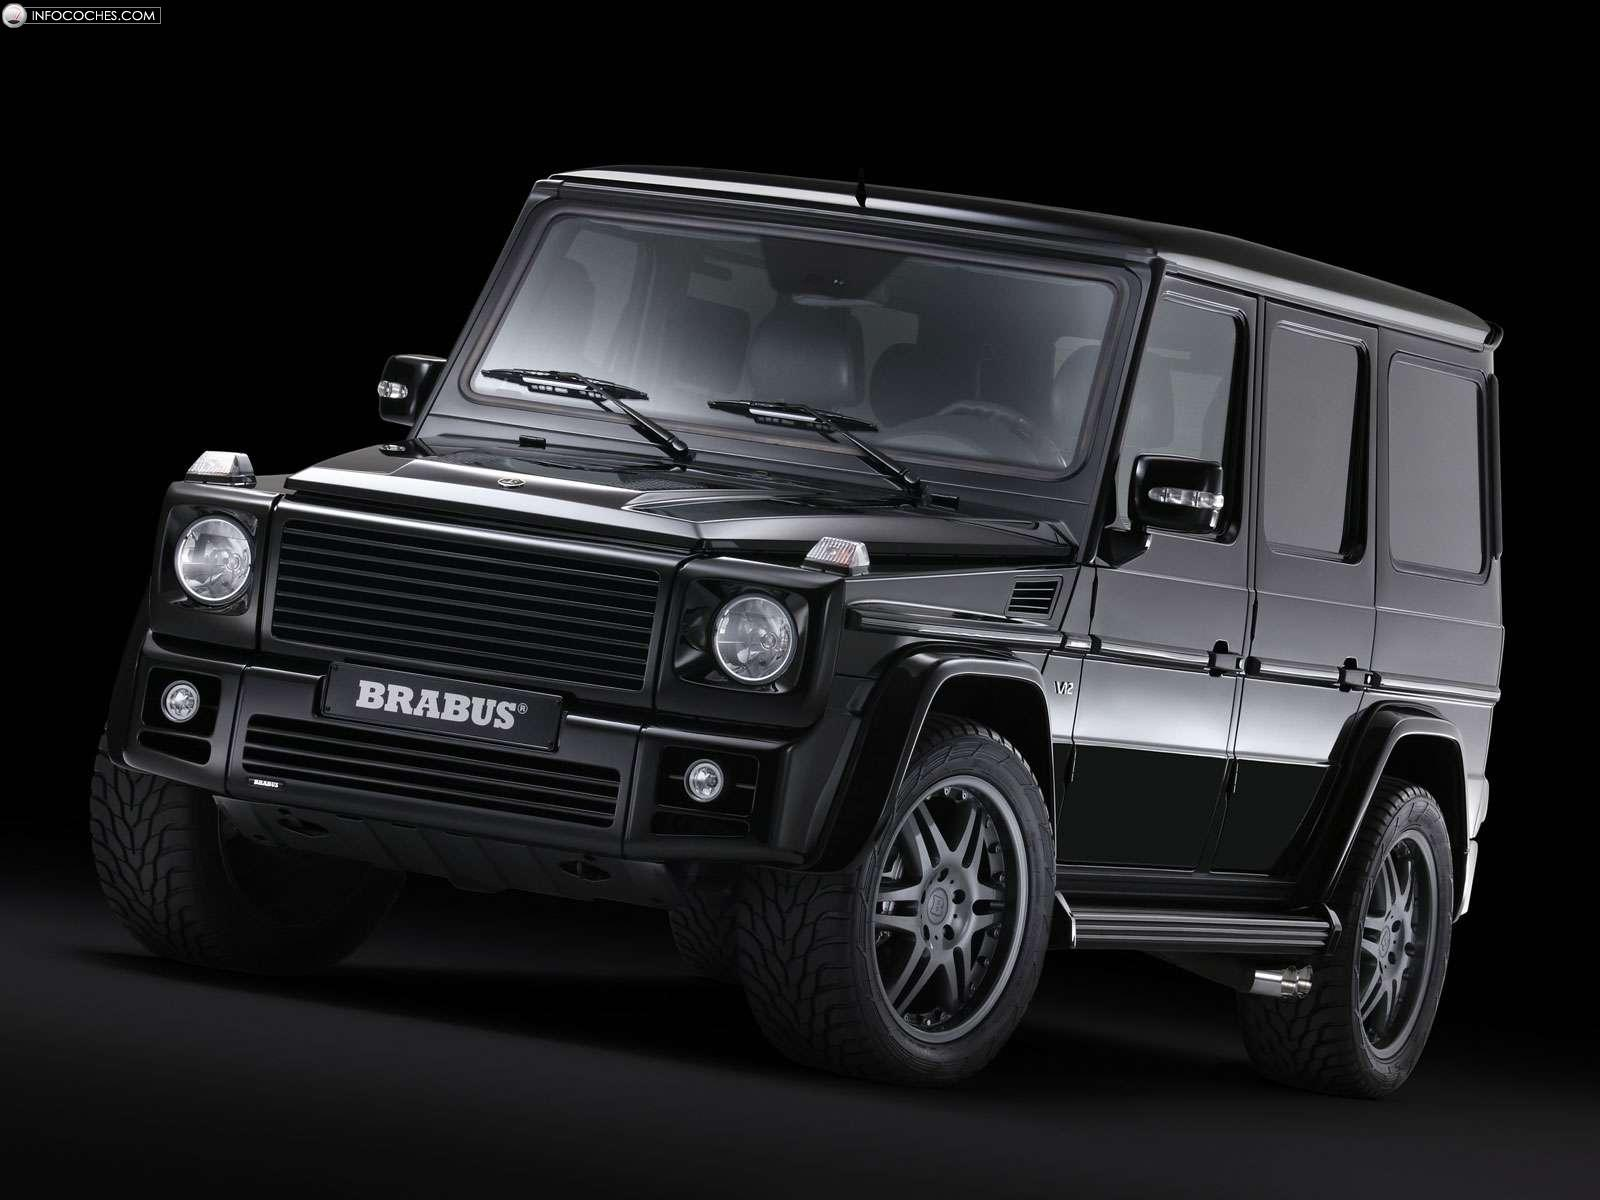 Mercedes-benz brabus photo - 4